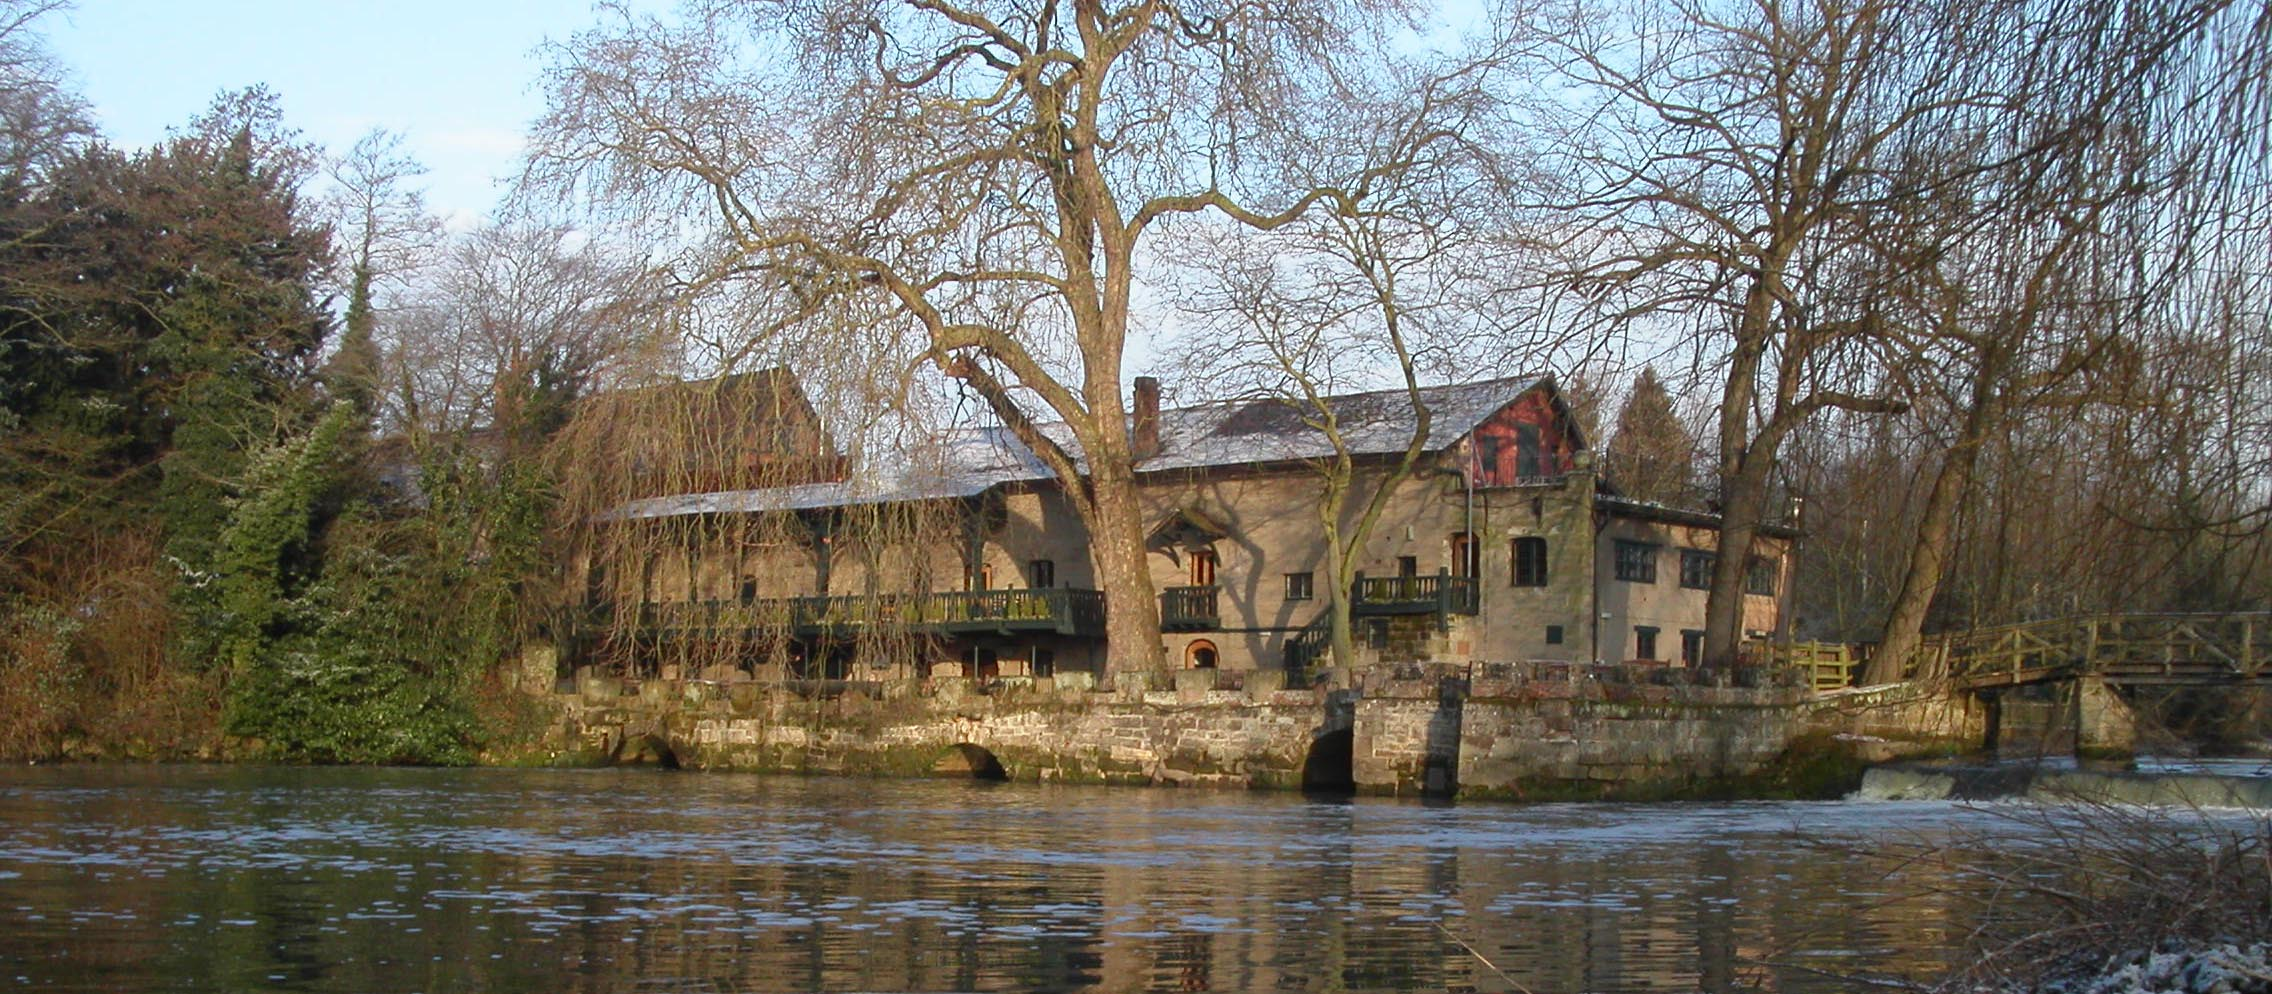 The Saxon Mill, Guy's Cliffe